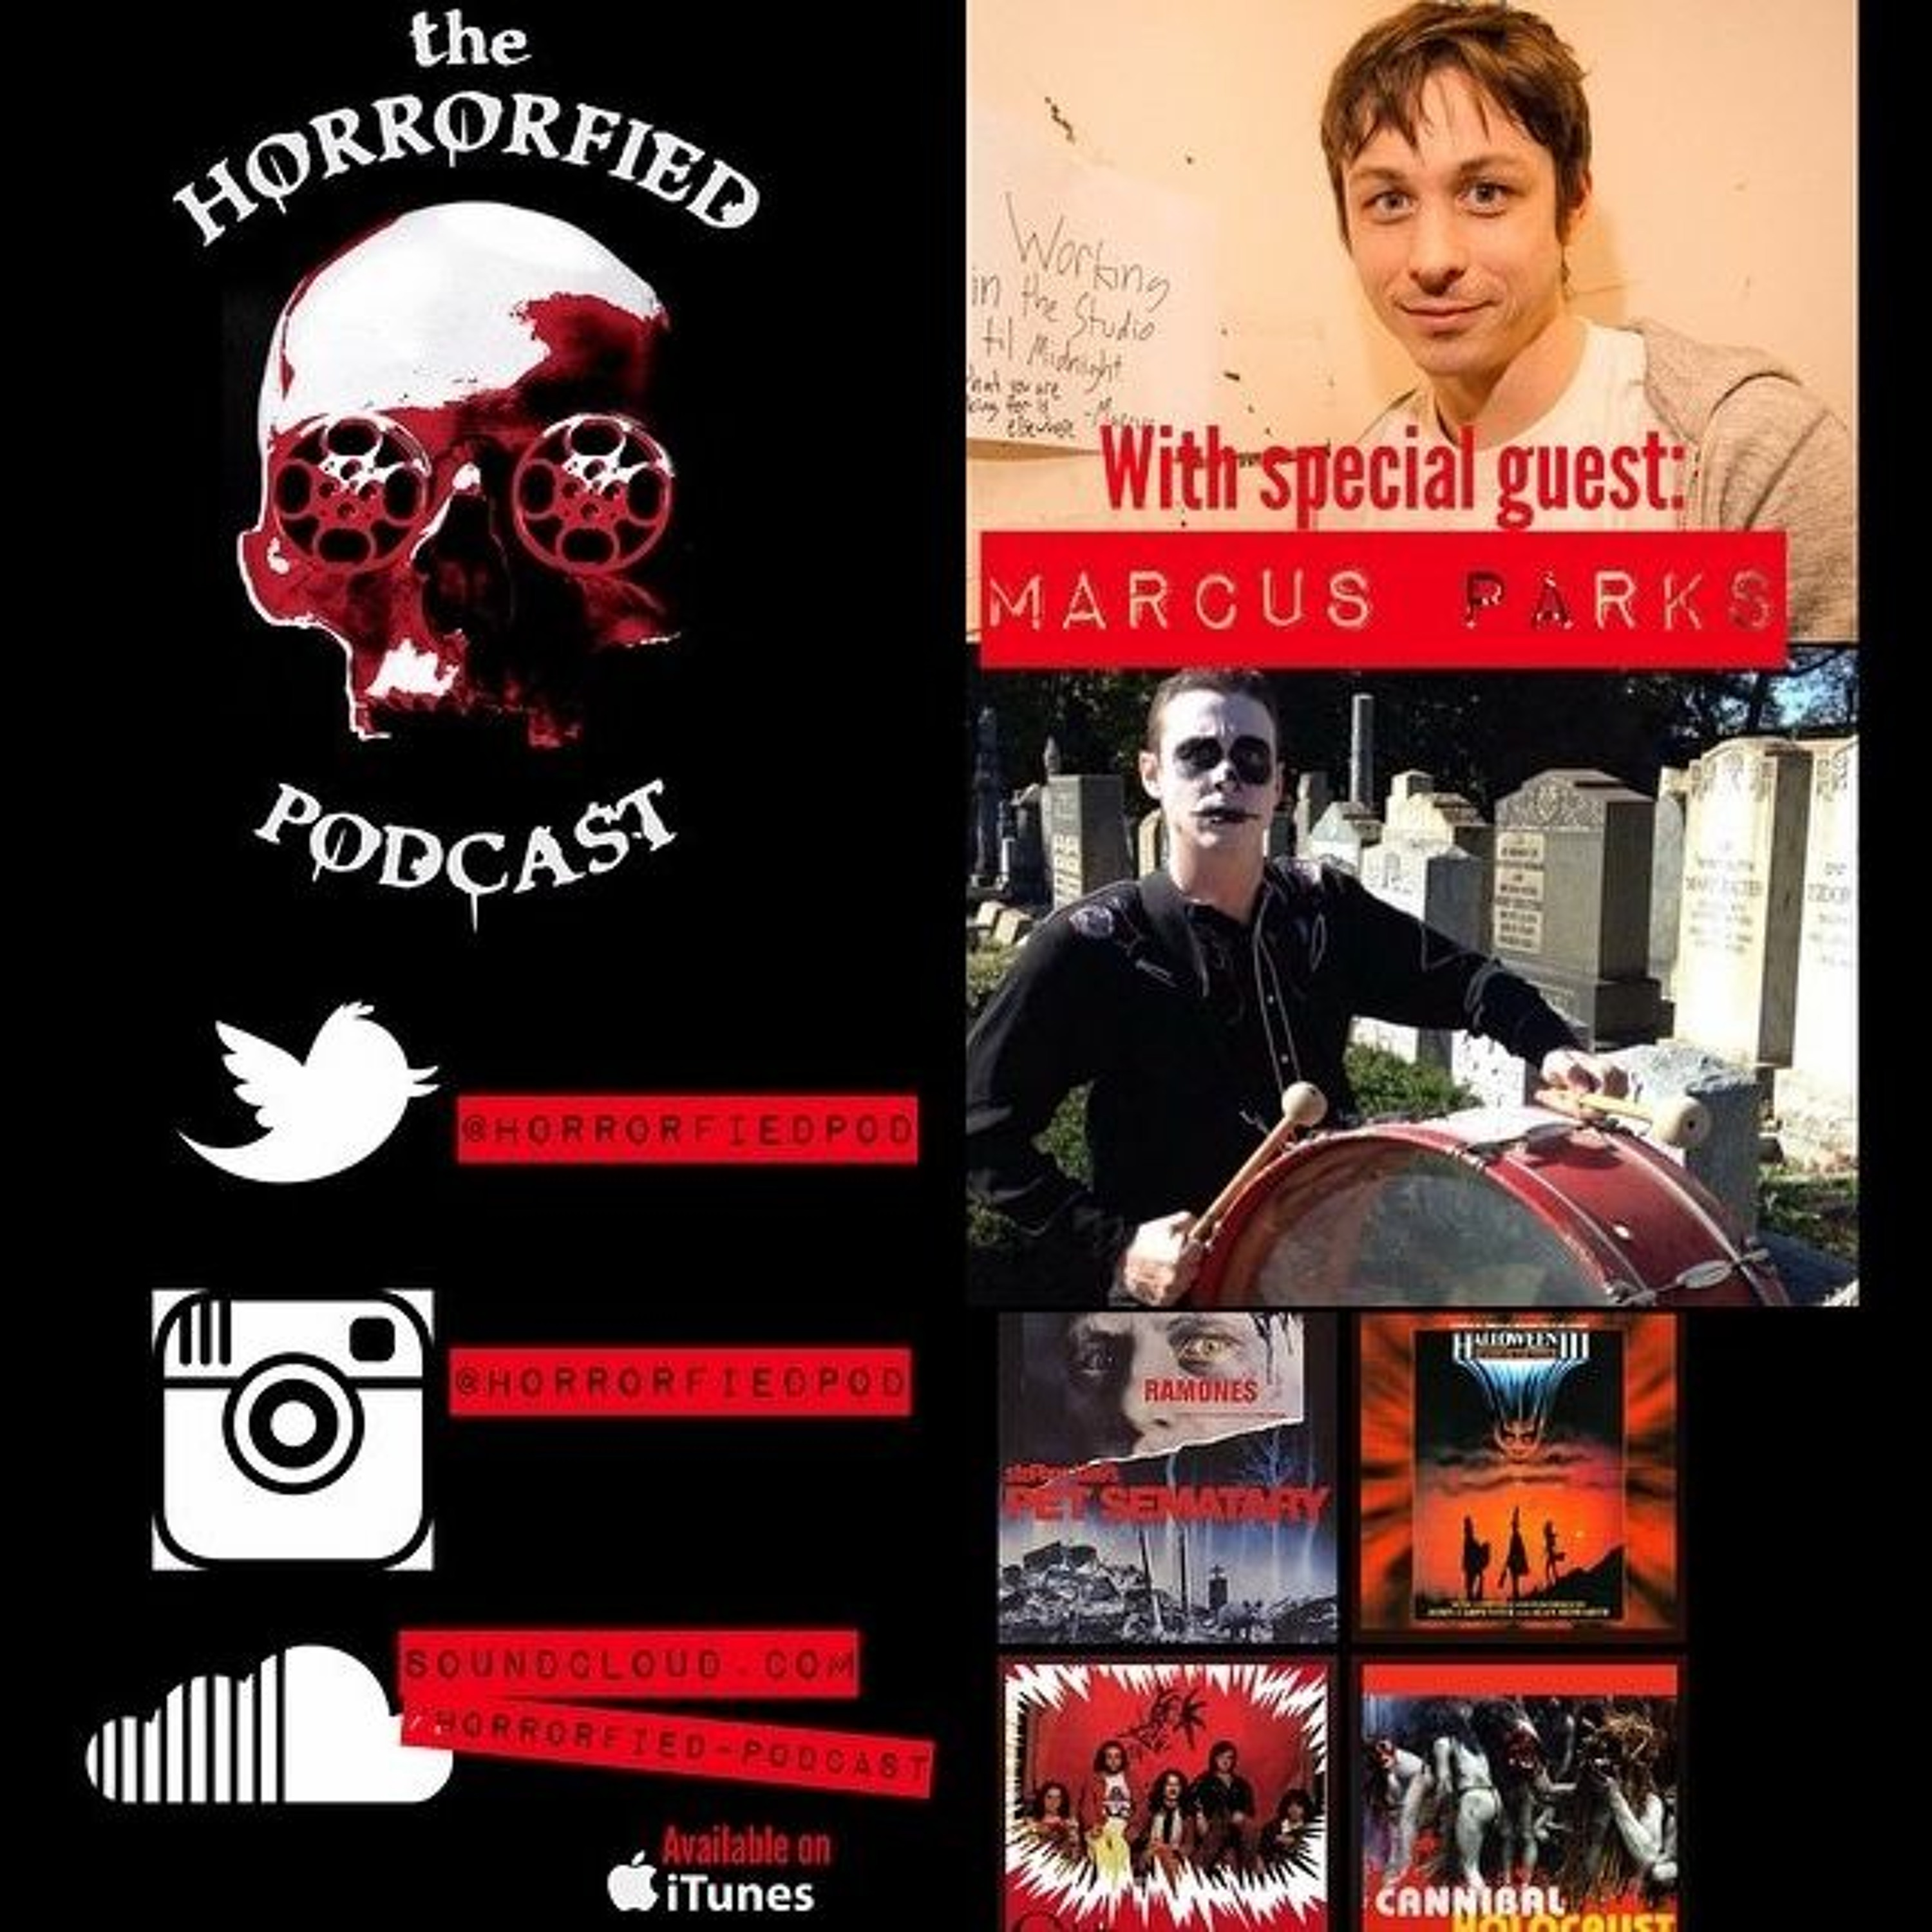 Marcus Parks Podcast Appearances Podchaser Since its first show in 2010, the last podcast on the left has barreled headlong into all things horror, as hosts henry zebrowski, ben kissel, and marcus parks cover subjects spanning jeffrey dahmer, werewolves, jonestown, and. podchaser